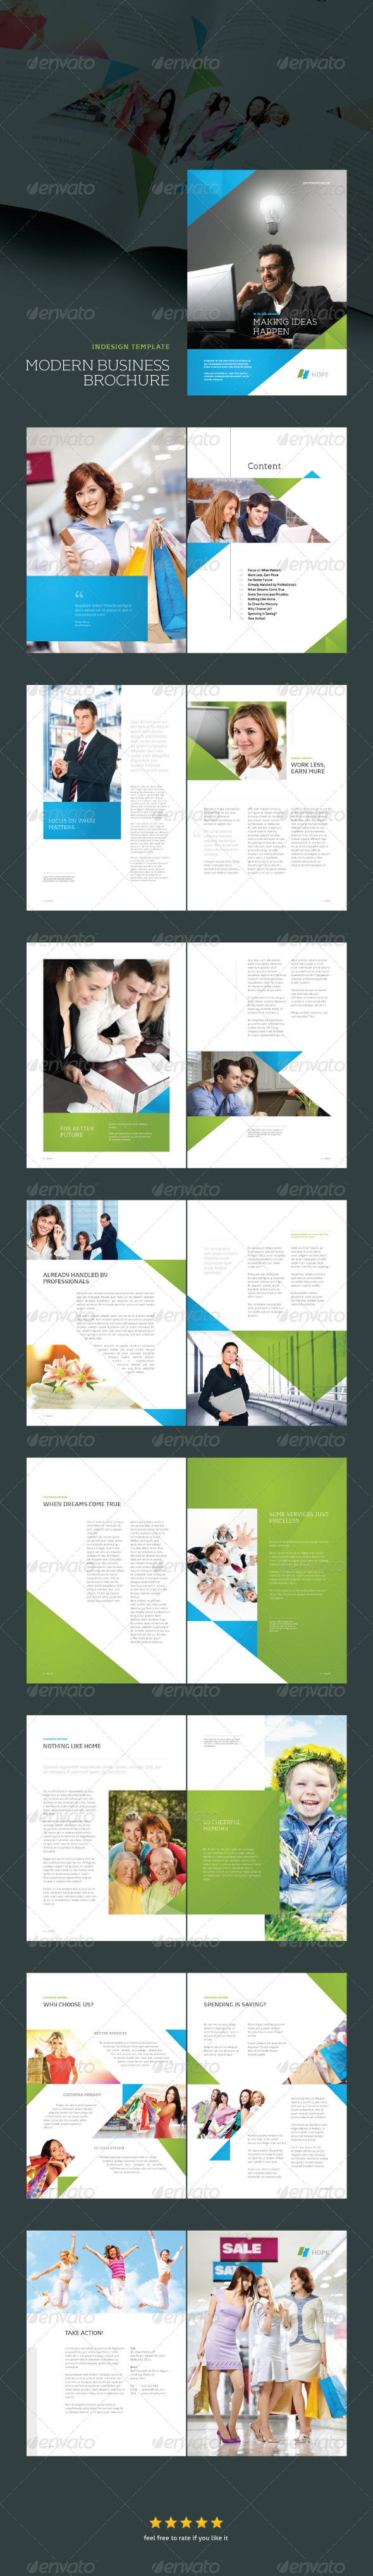 GraphicRiver InDesign Modern Business Brochure Template 6007233